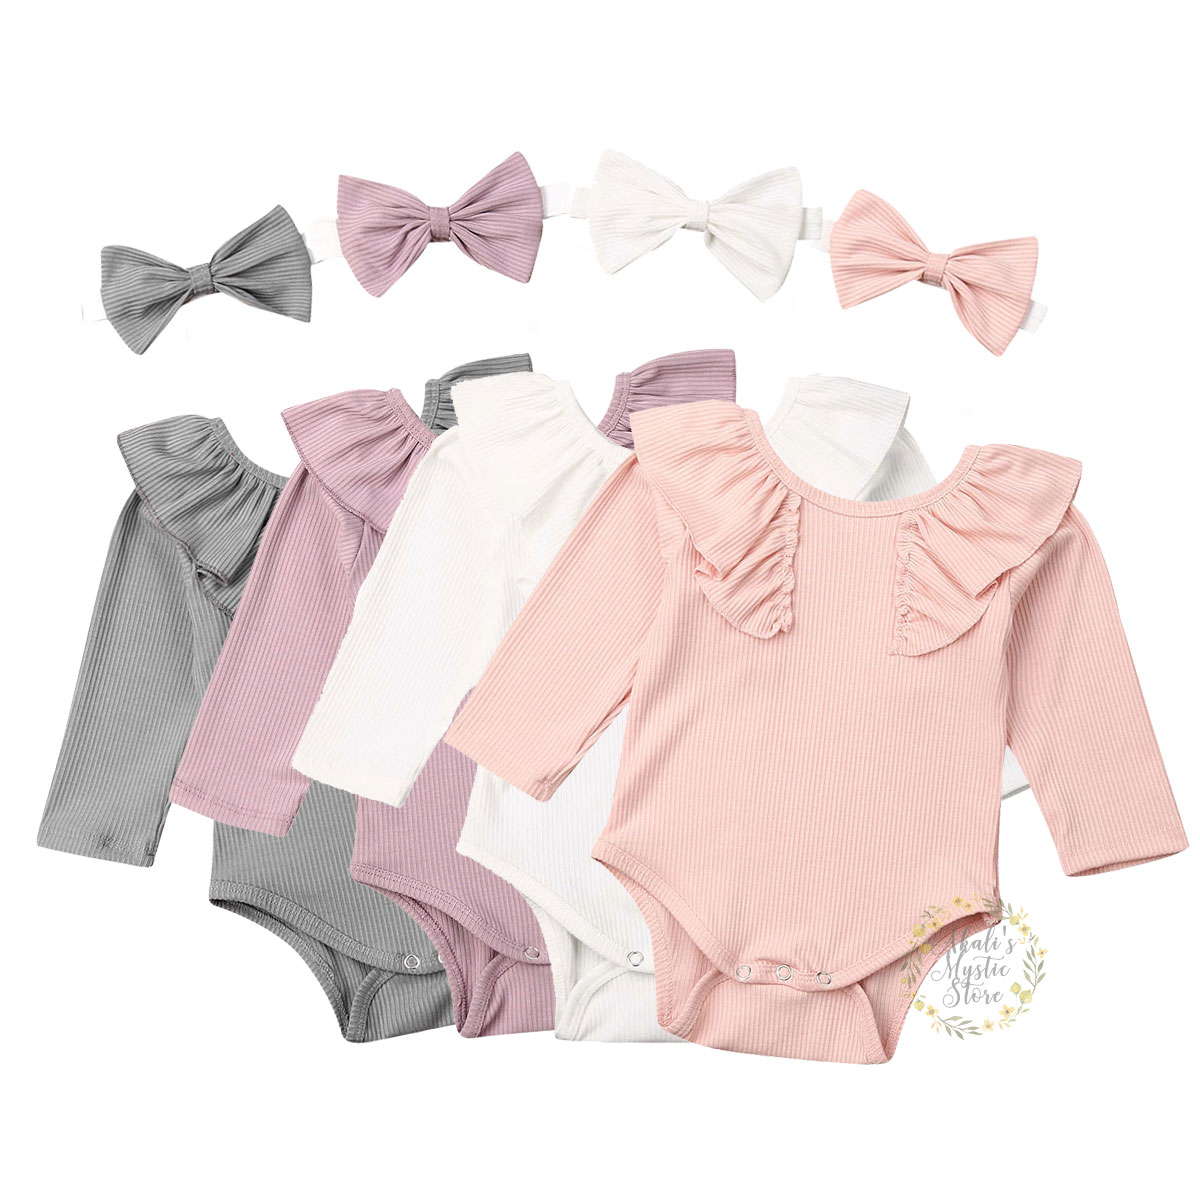 0-24M Infant Baby Girl Kids Ruffles Solid Long Sleeve Romper Jumpsuit Top Blouse